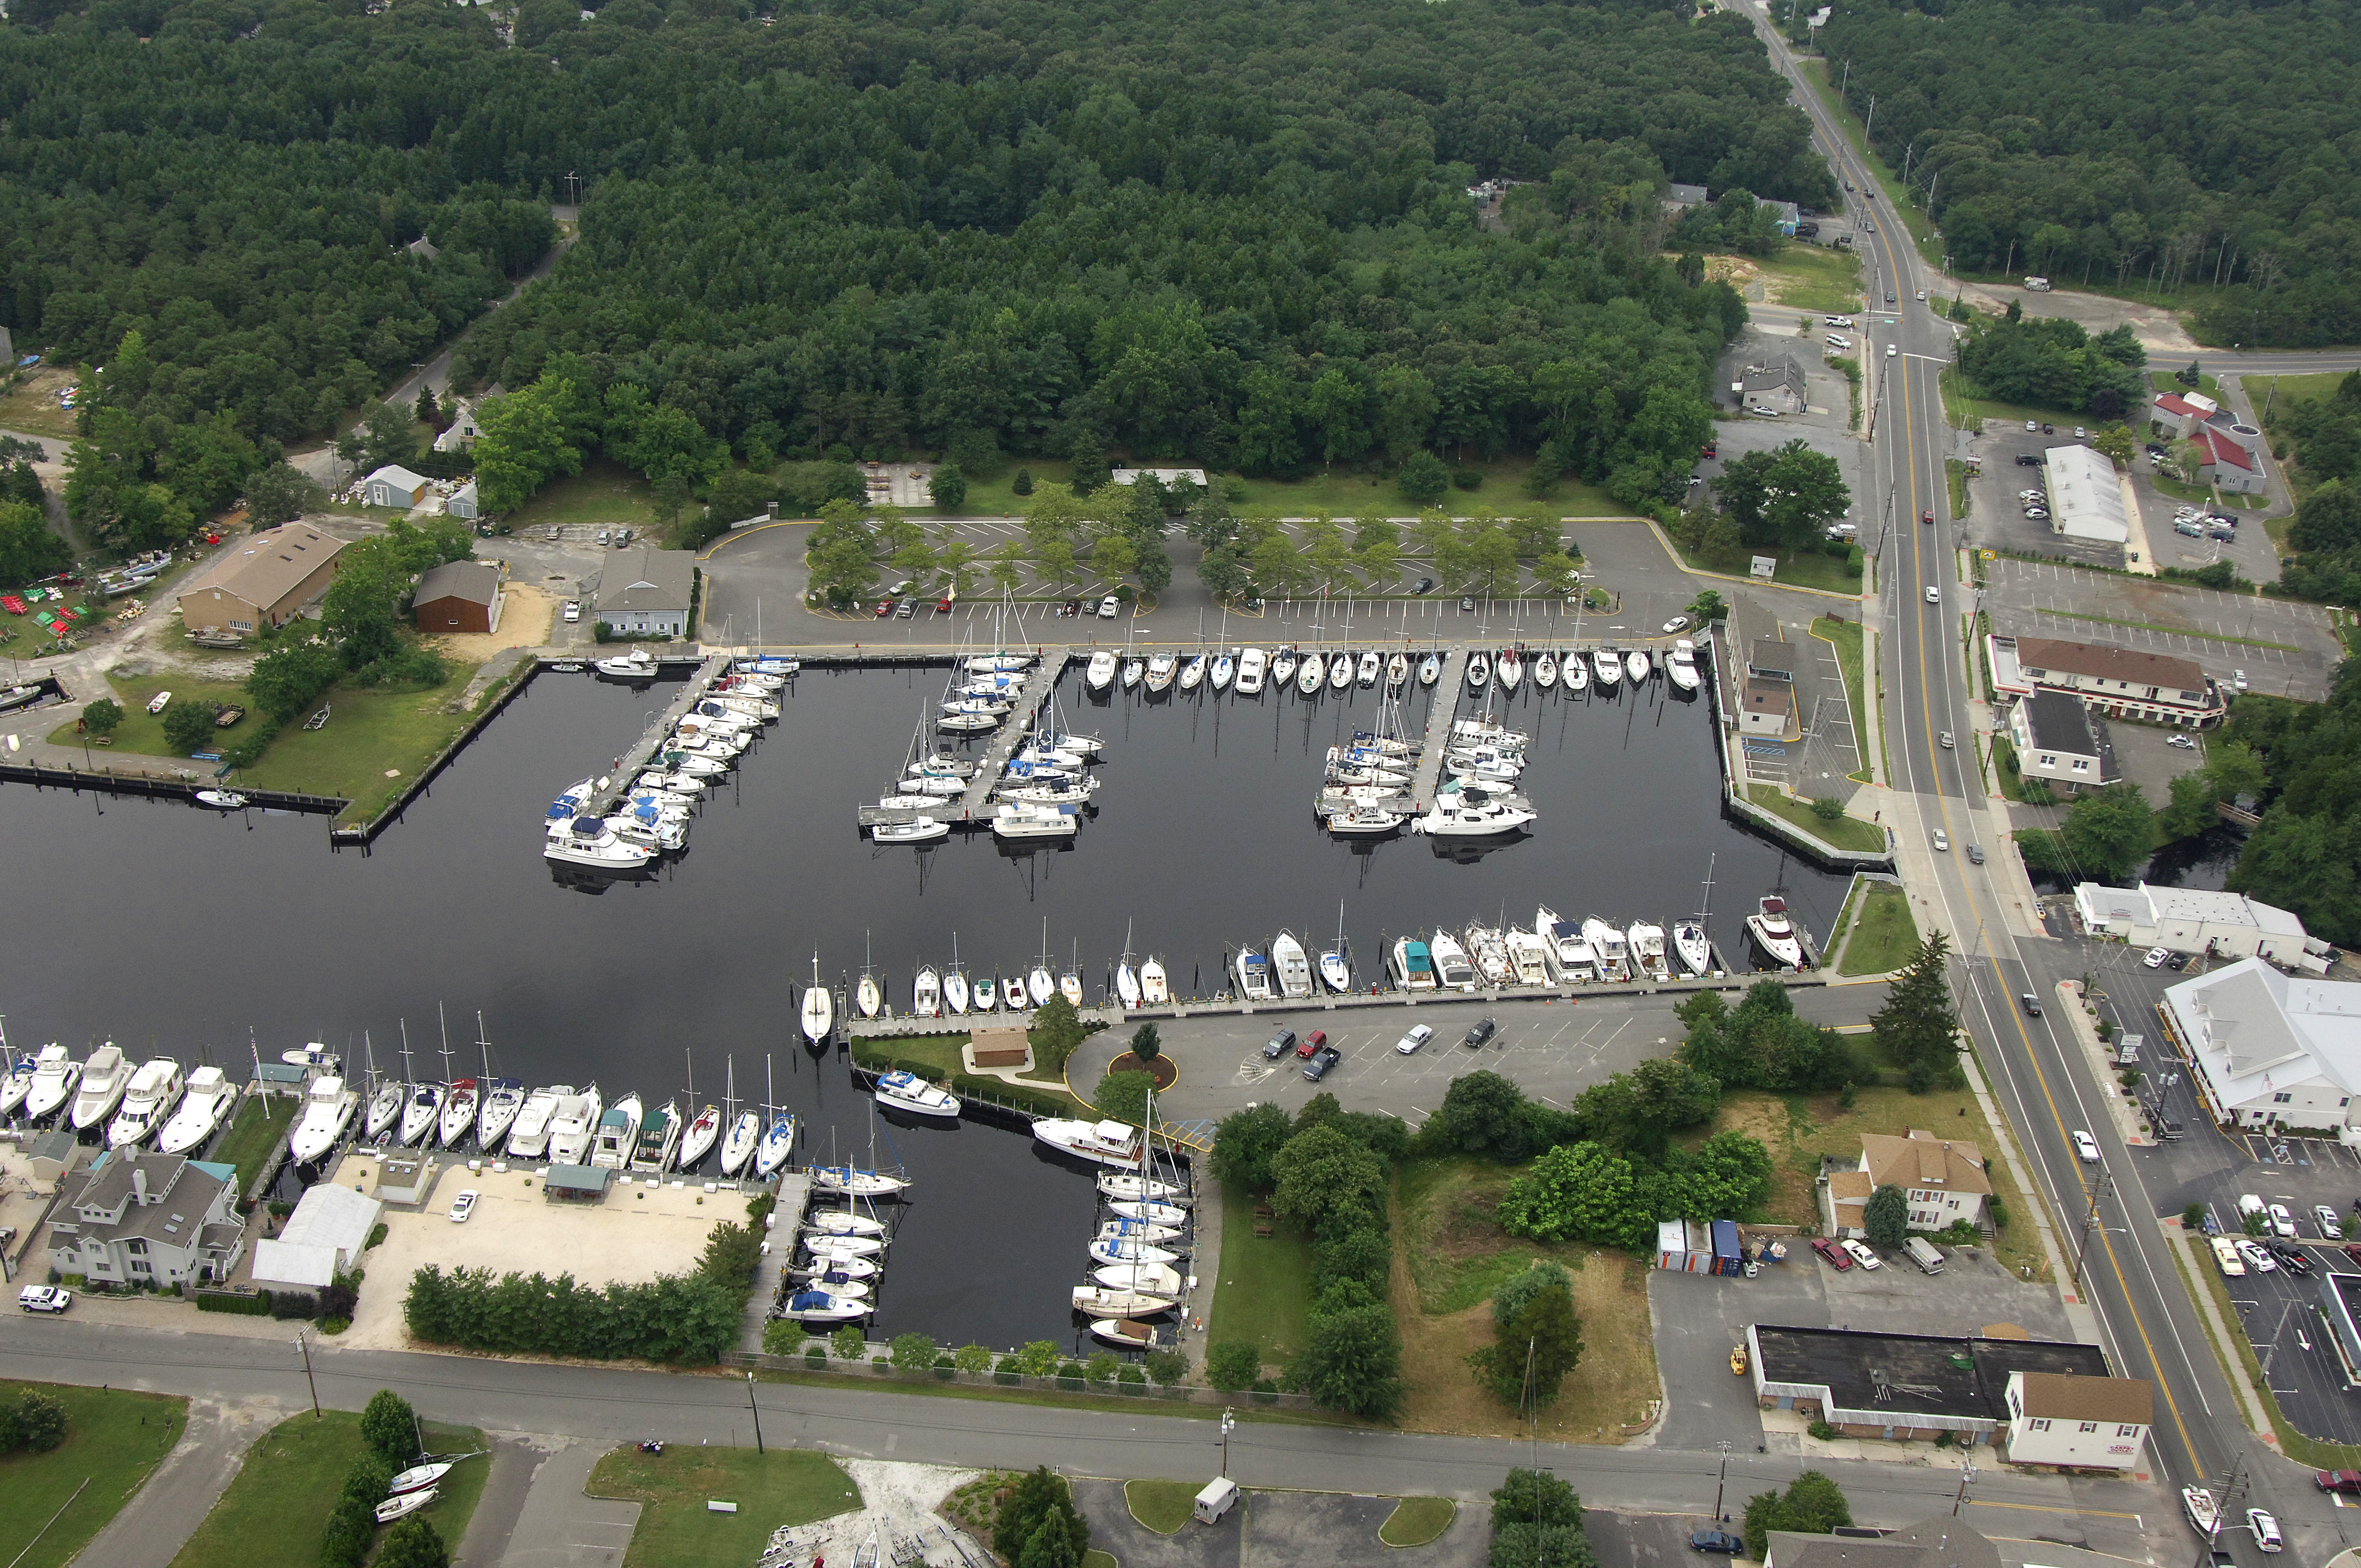 forked river state marina in forked river  nj  united